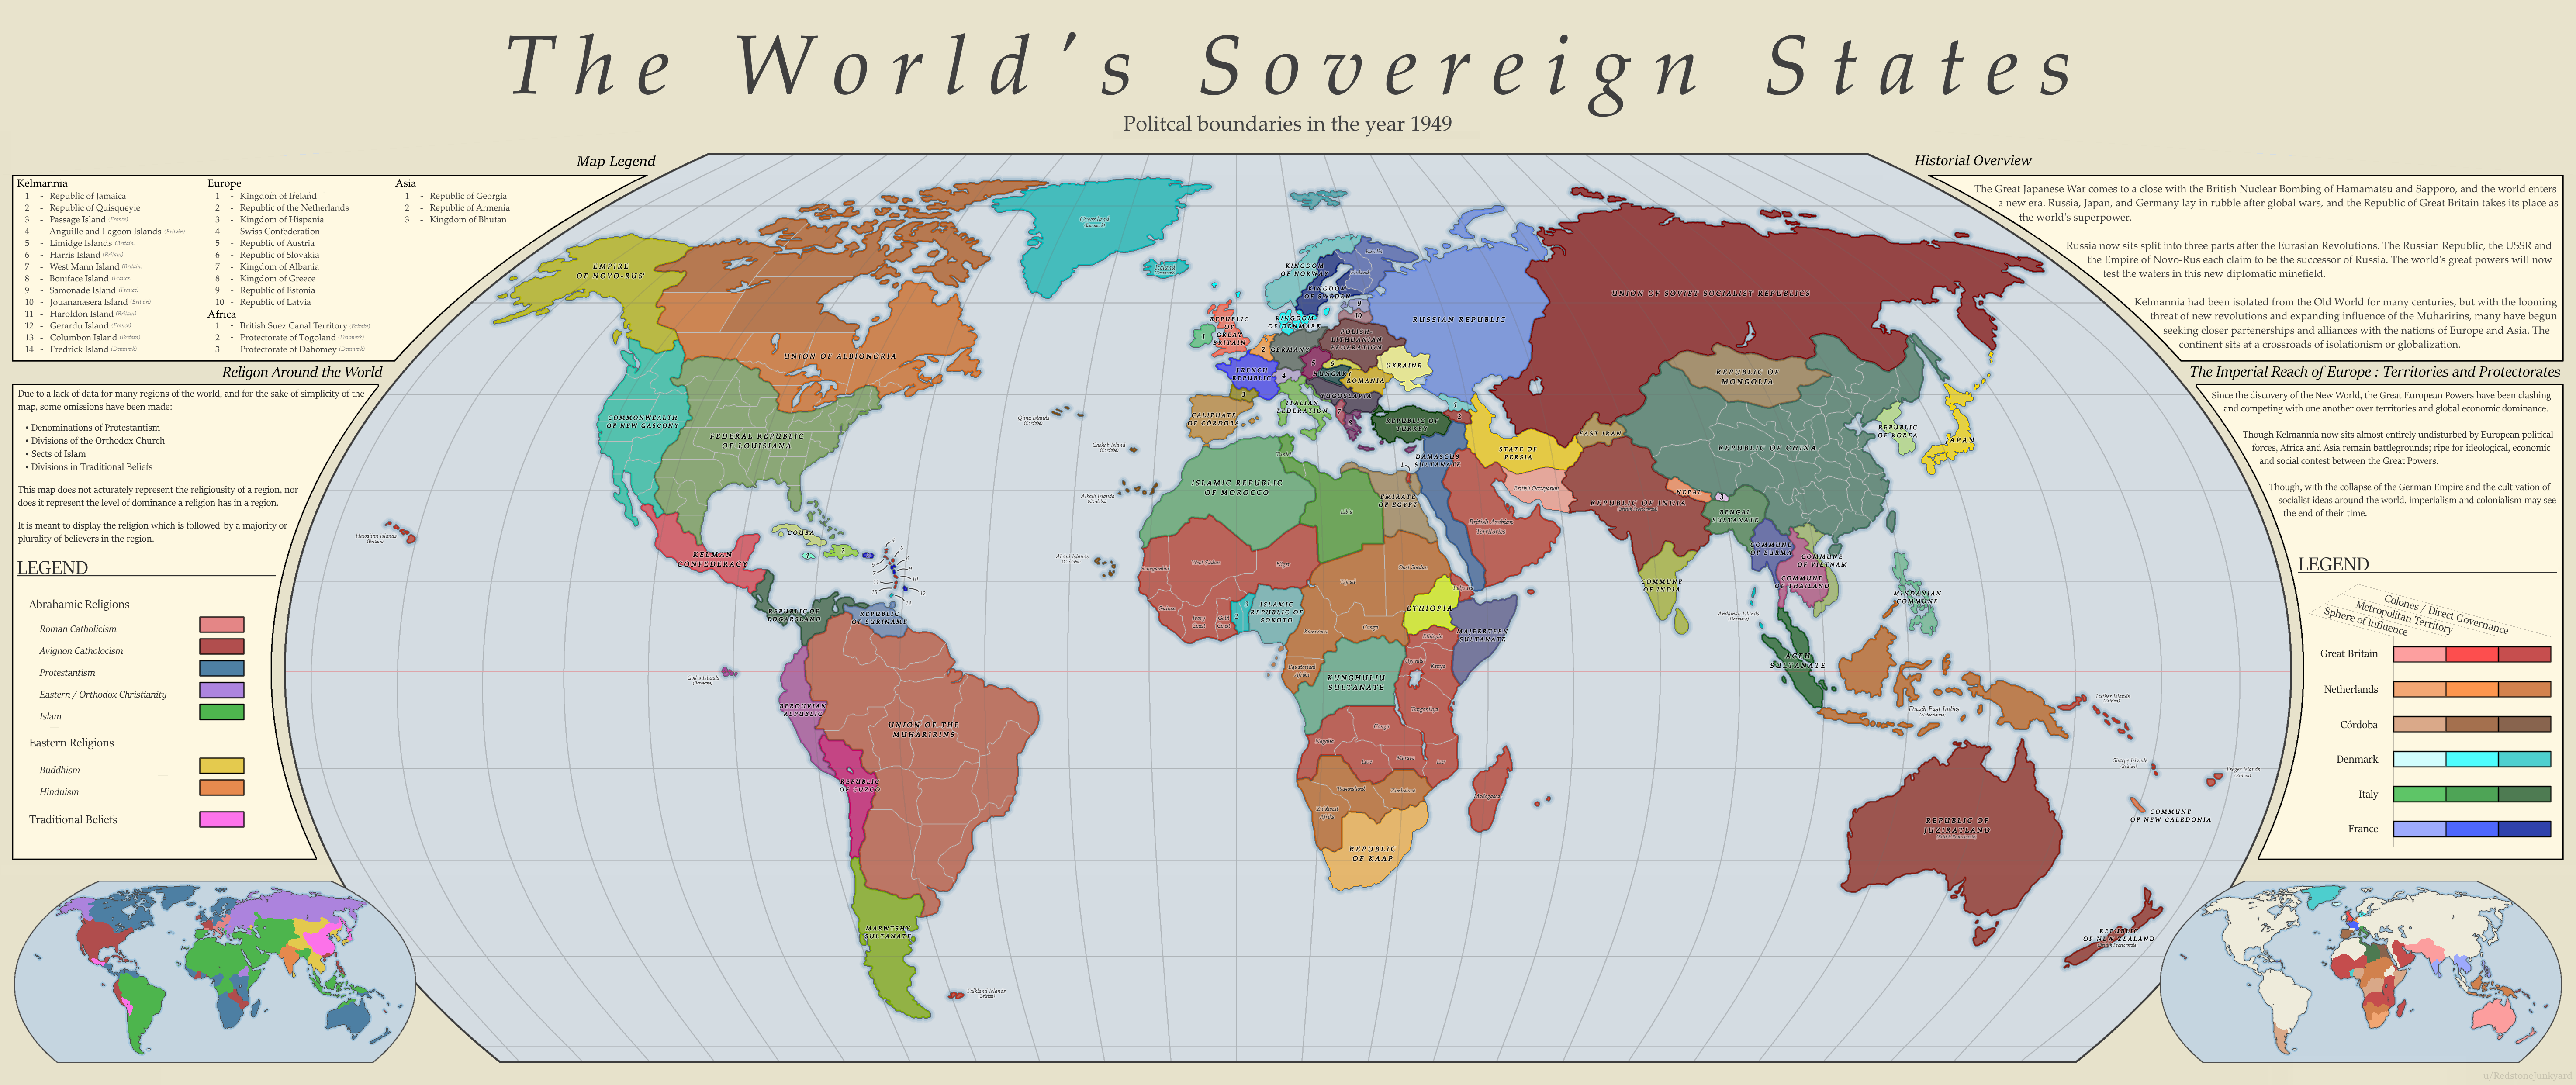 the worlds sovereign states political boundaries in the year